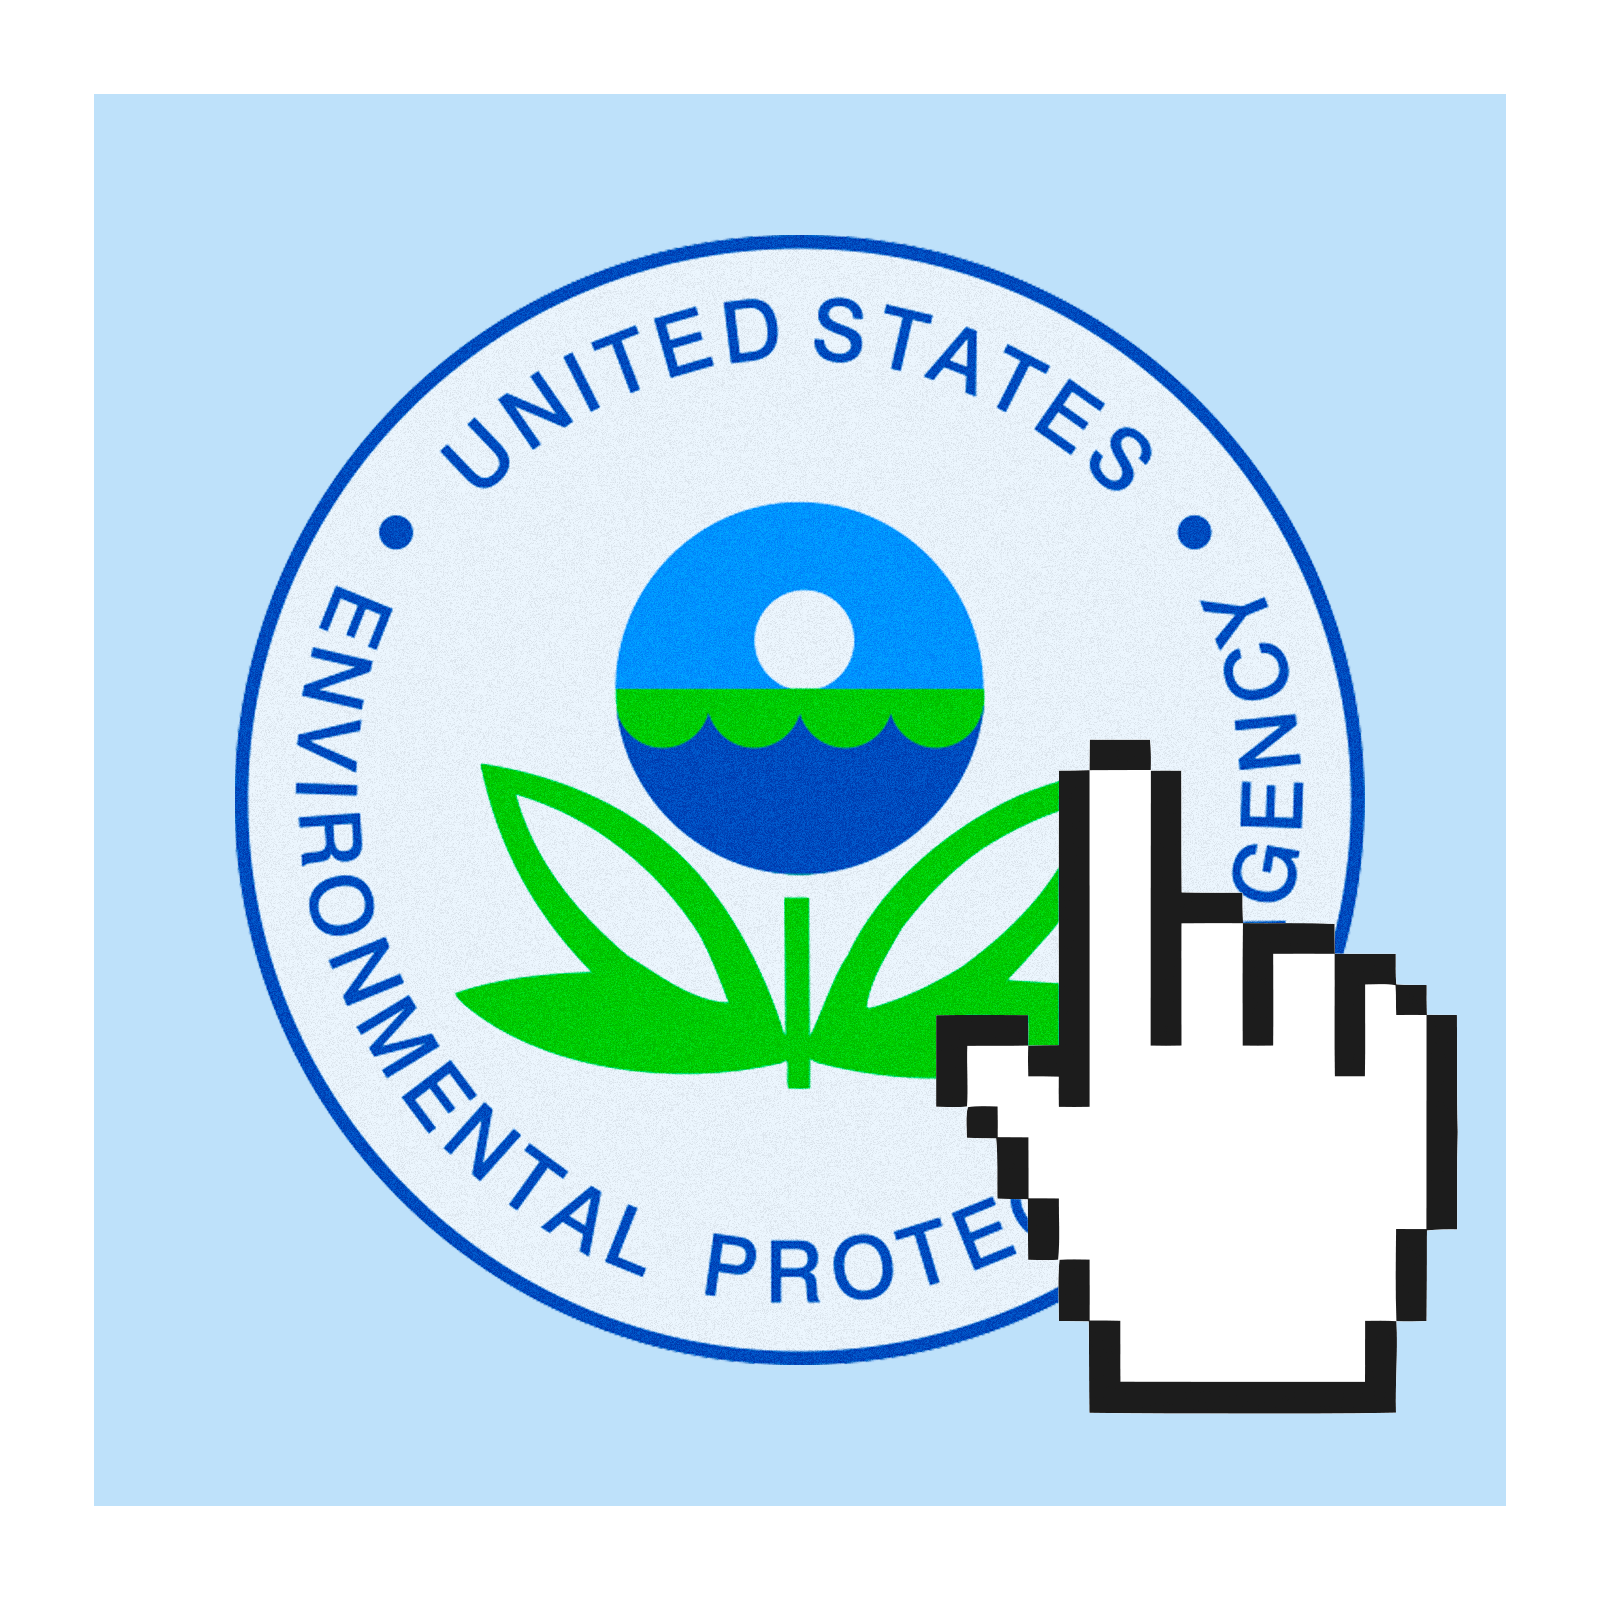 Facts are back, and so is the EPA's climate change website